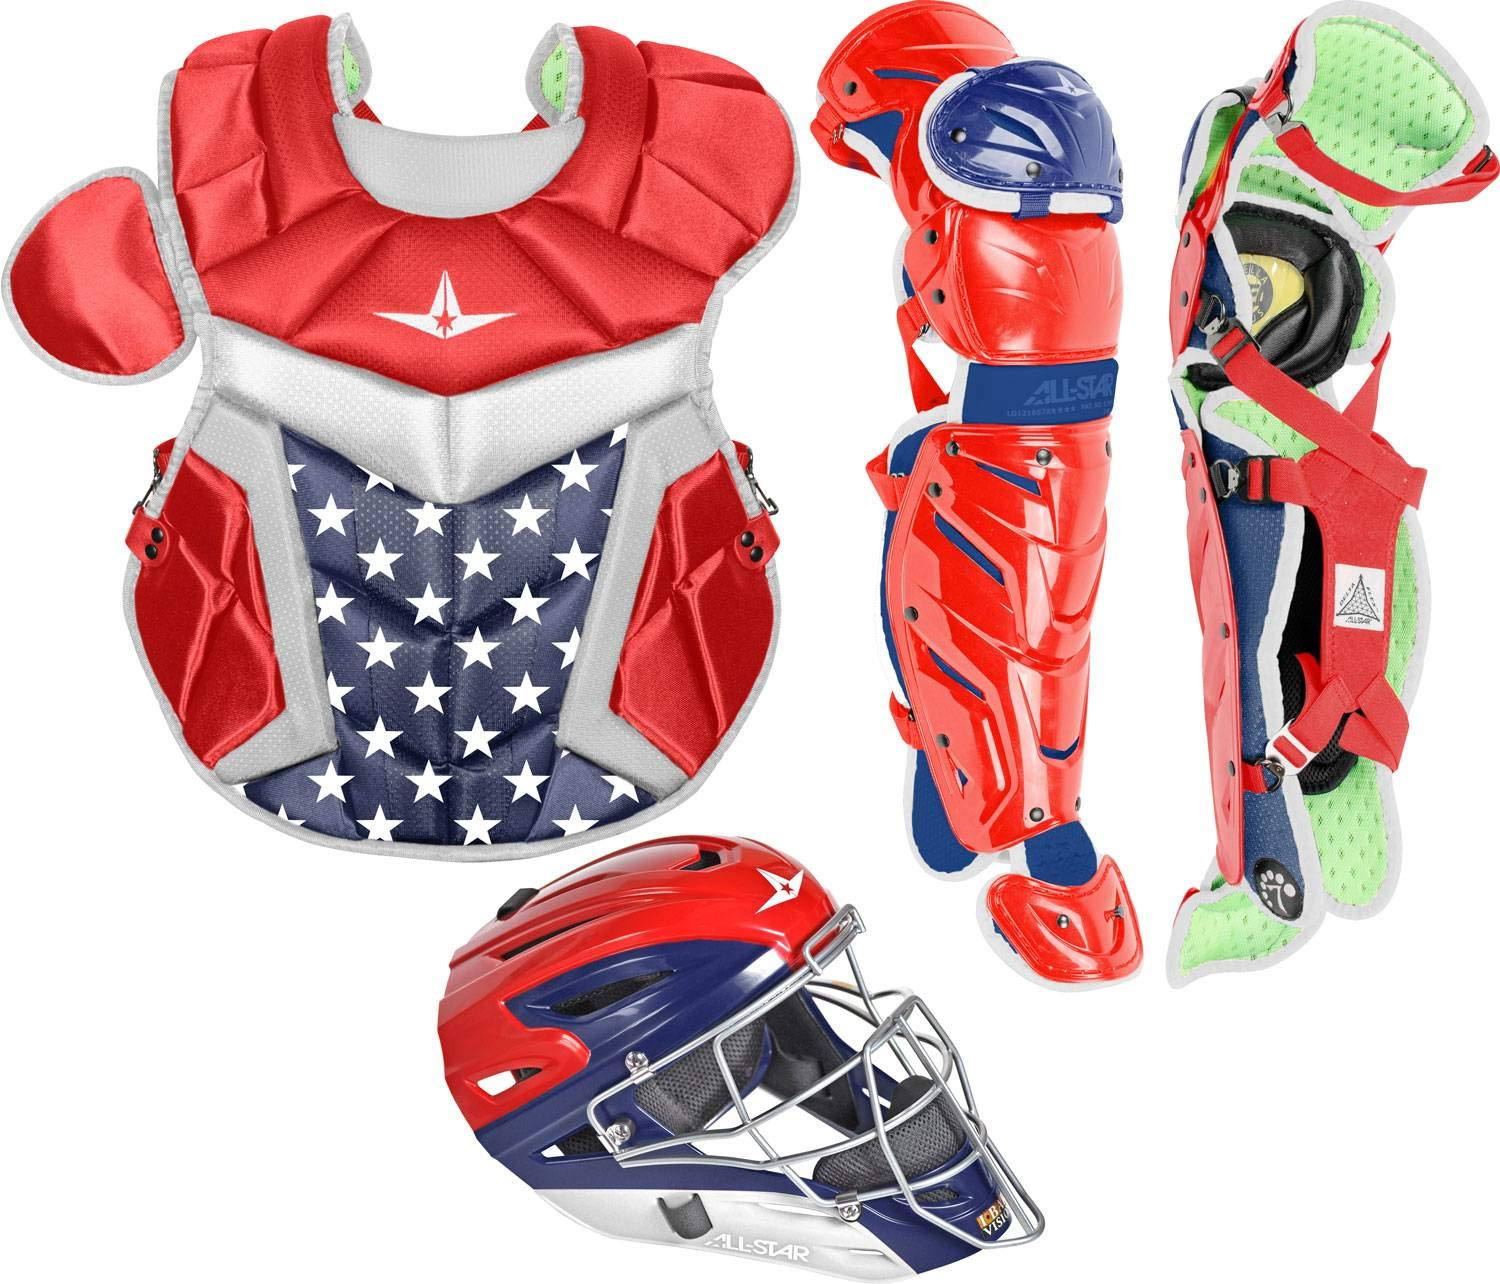 All-Star Inter System7 Axis USA Pro Catcher's Set by All-Star